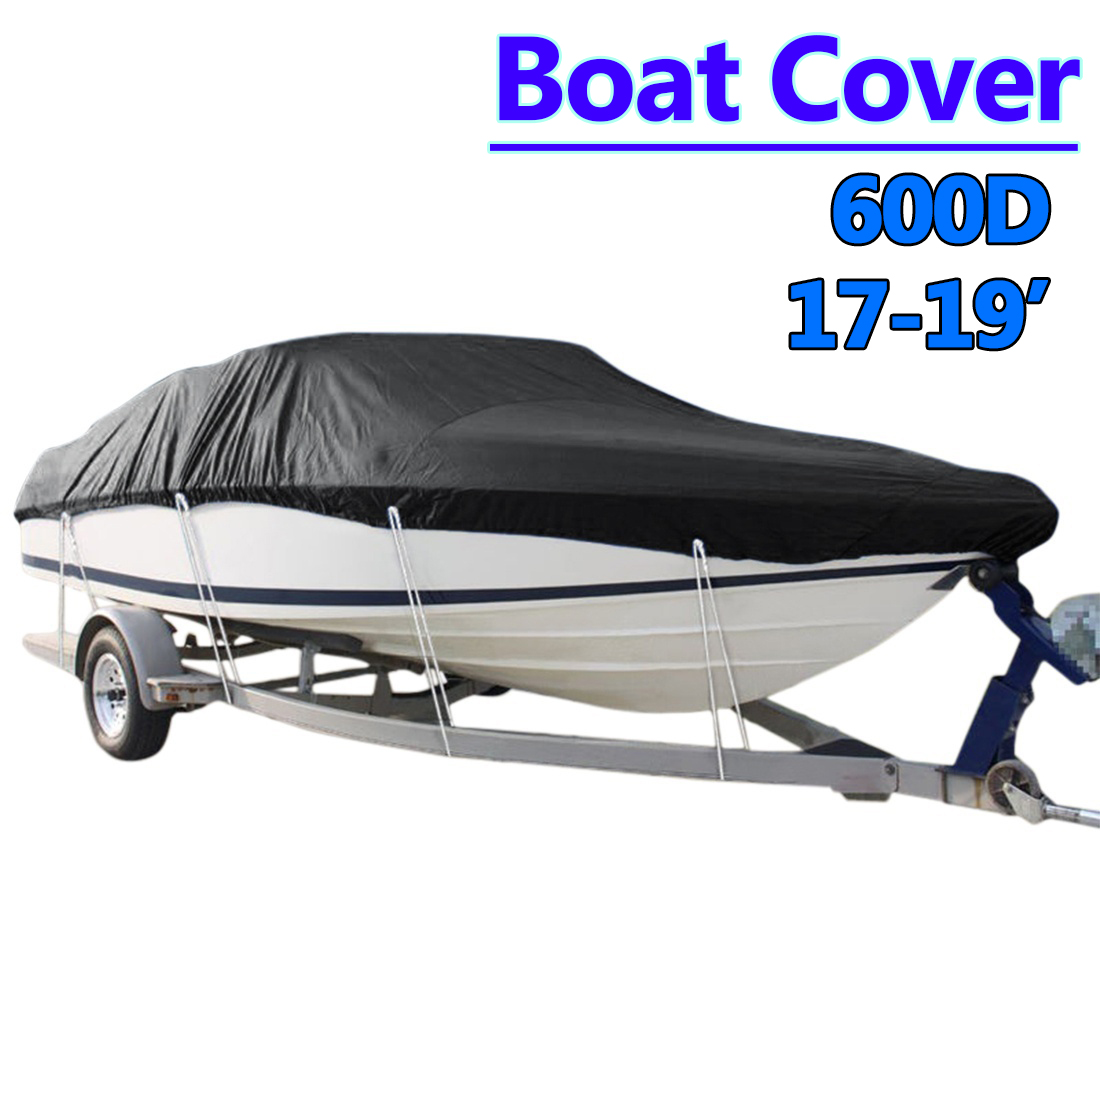 Heavy   17-19ft Beam 96inch Trailerable 600D Marine Grade Boat Cover Waterproof UV Protected Black Boat Accessories